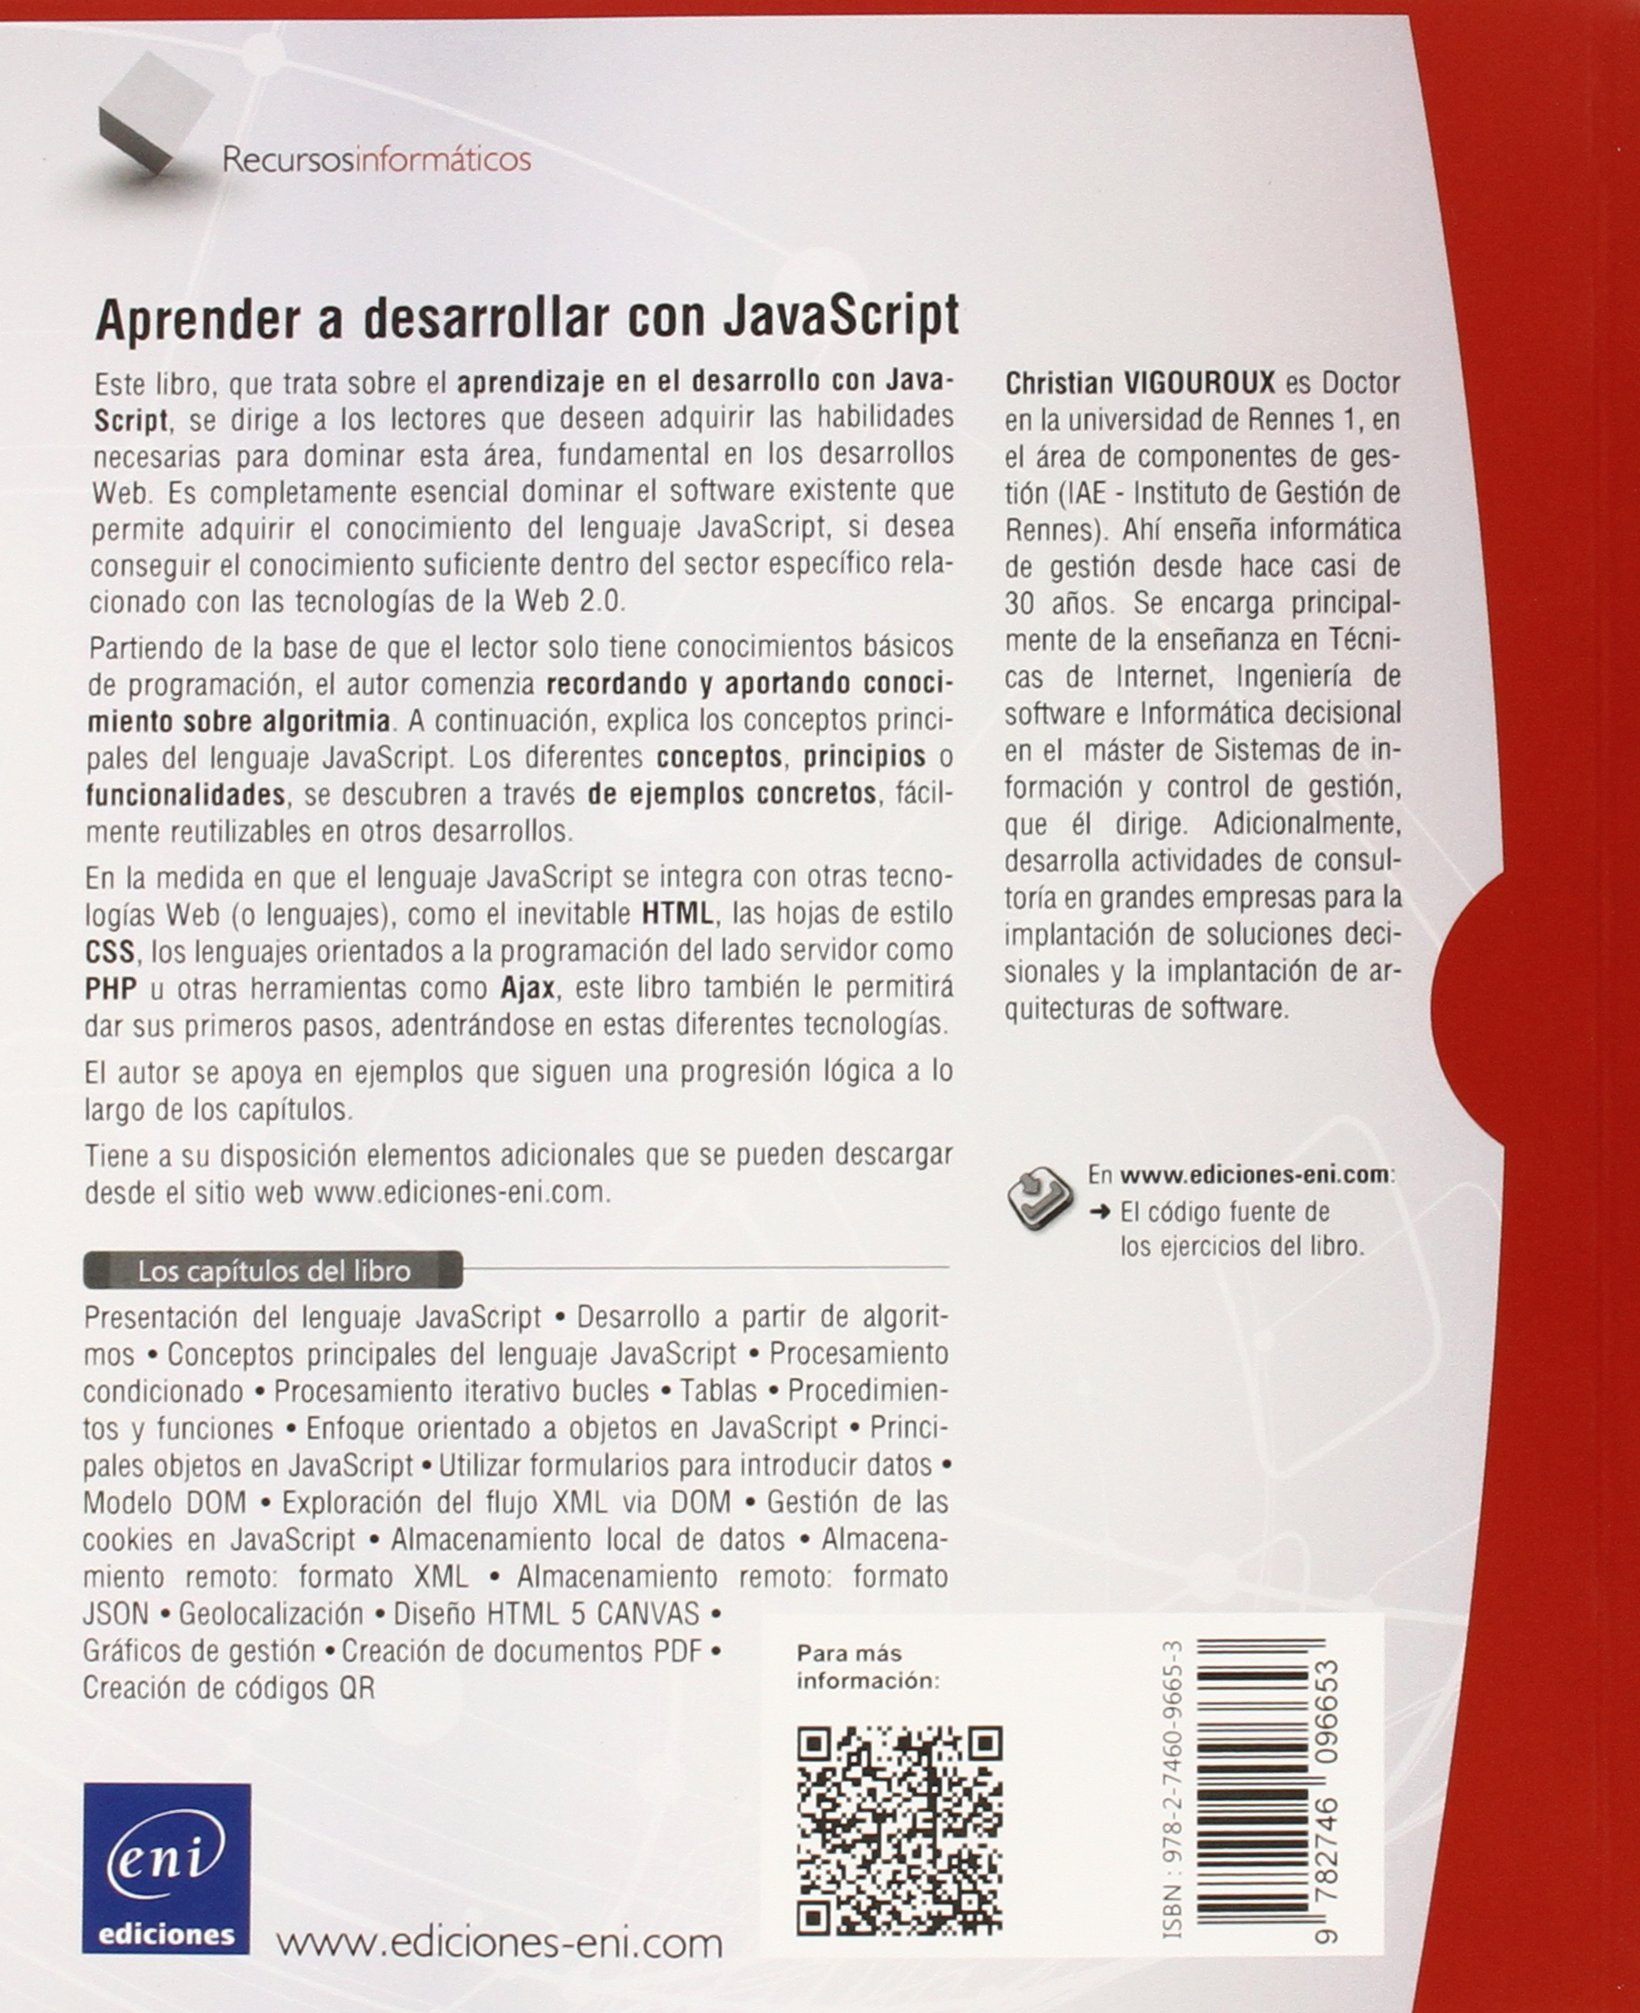 Aprender A Desarrollar Con JavaScript: Amazon.es: Christian Vigouroux: Libros